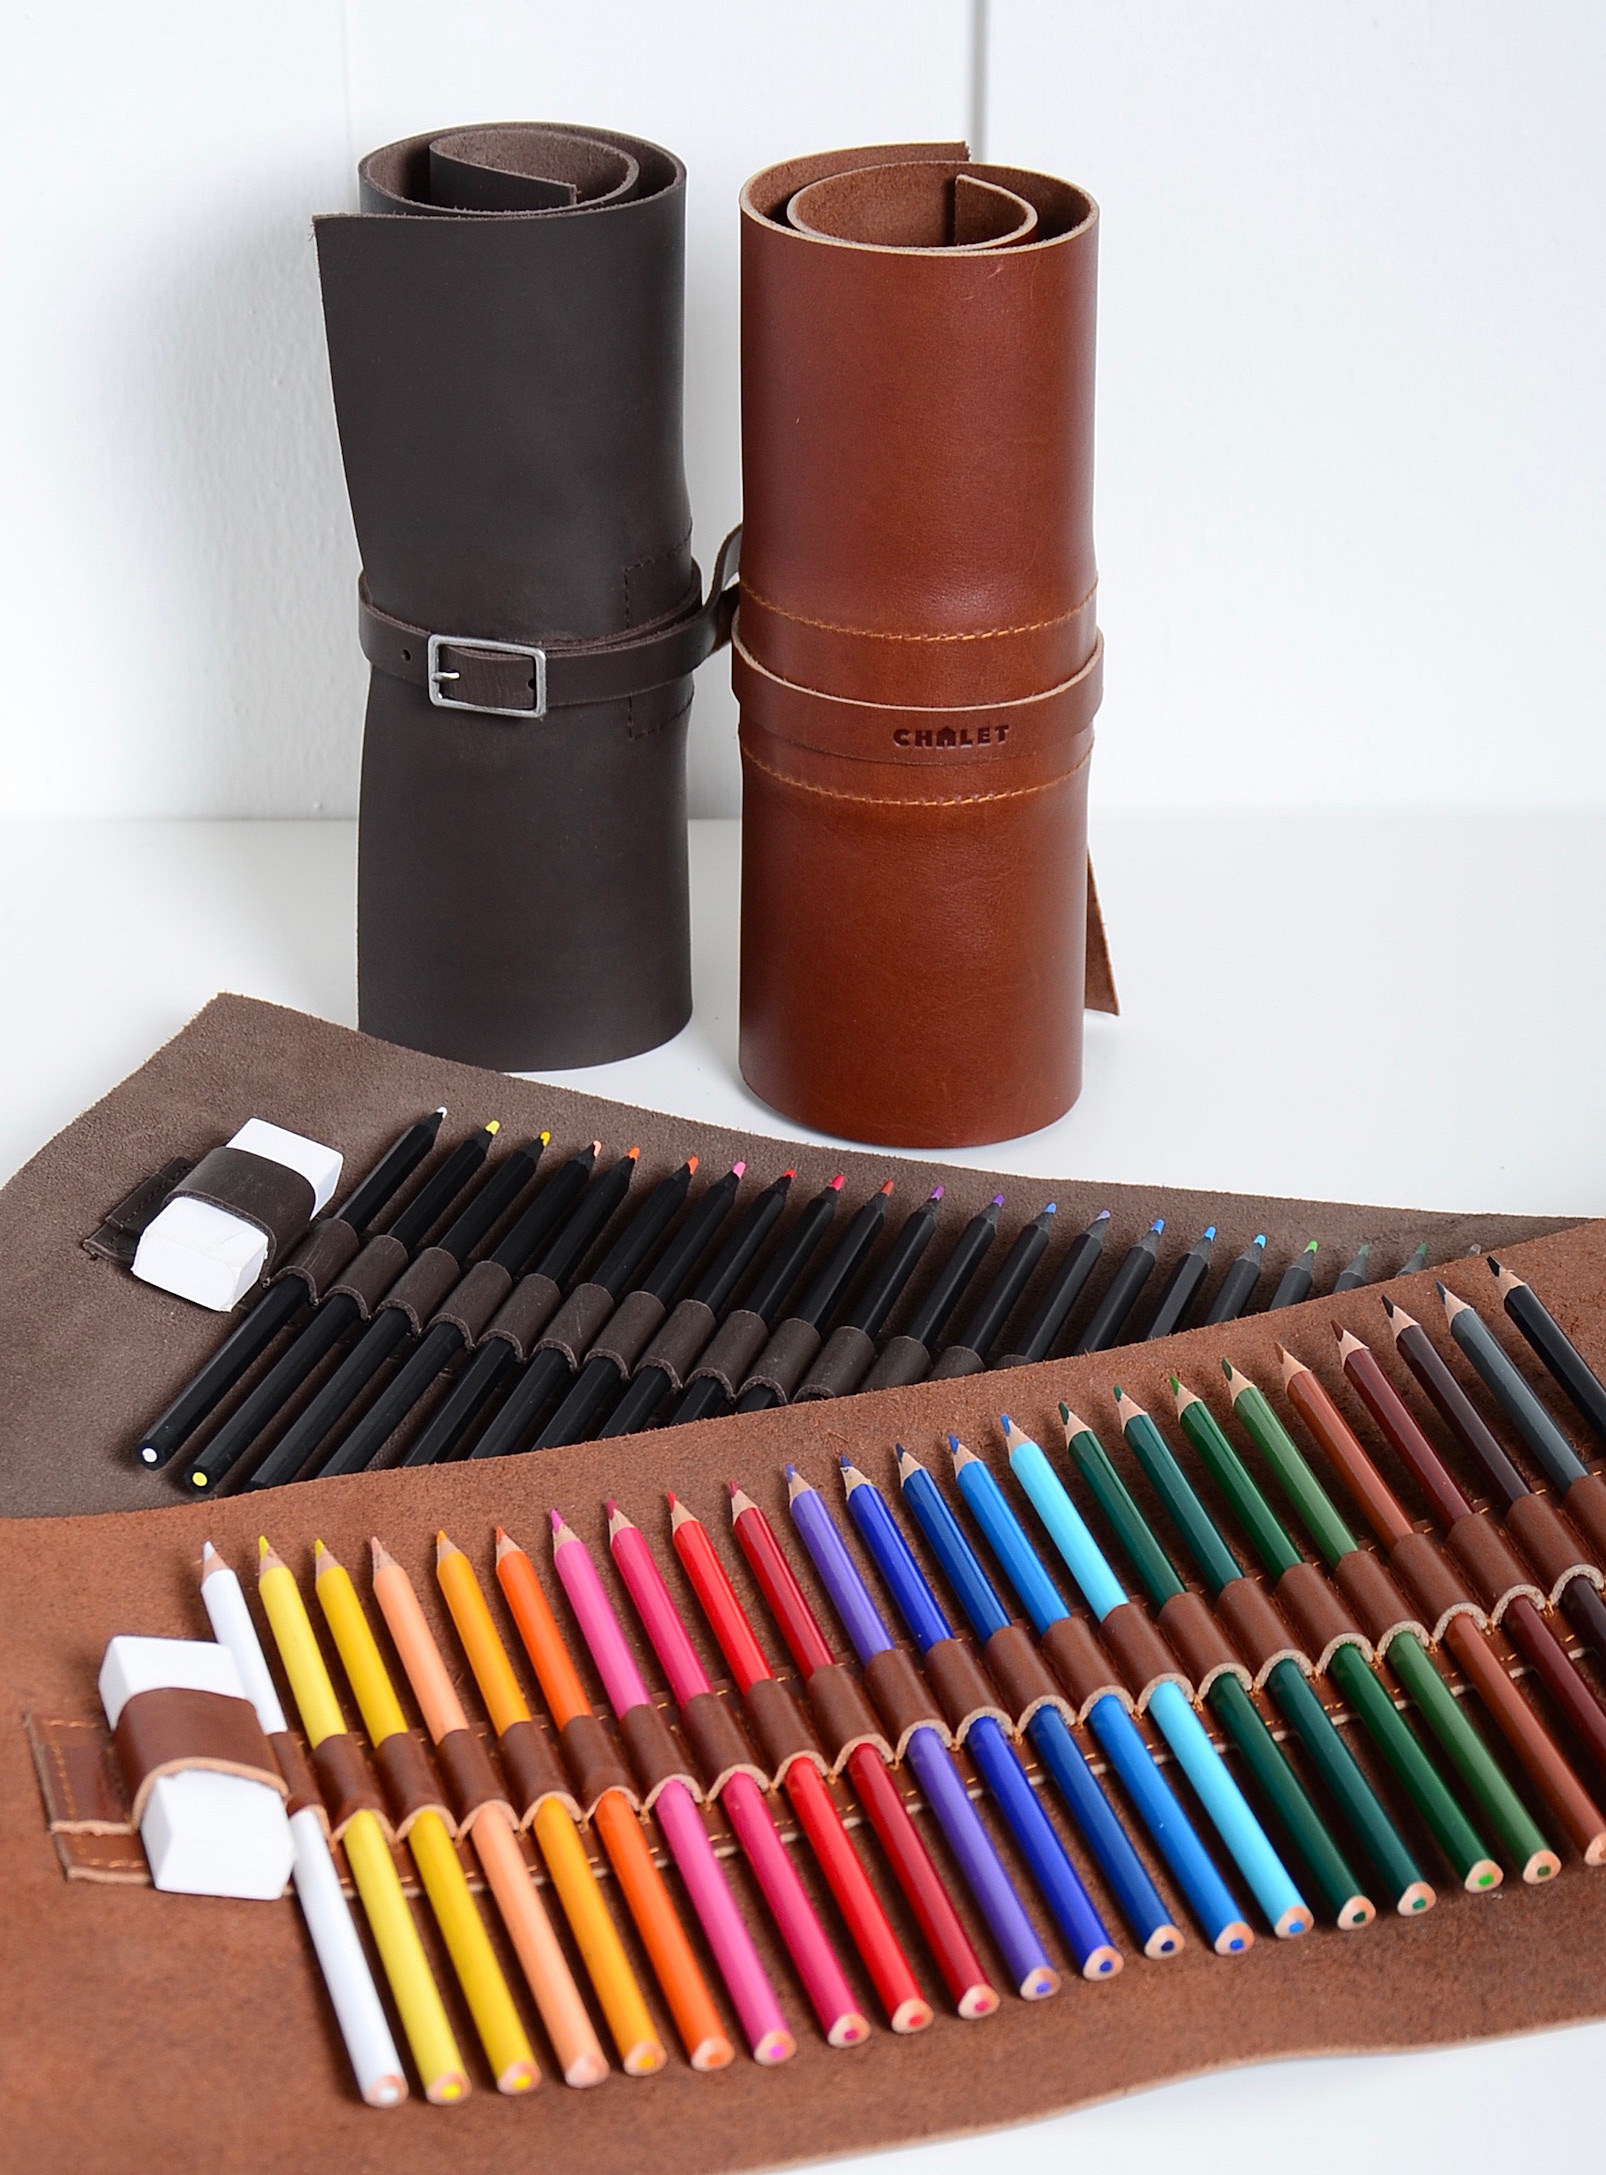 A leather art supply kit filled with coloured pencils and an eraser